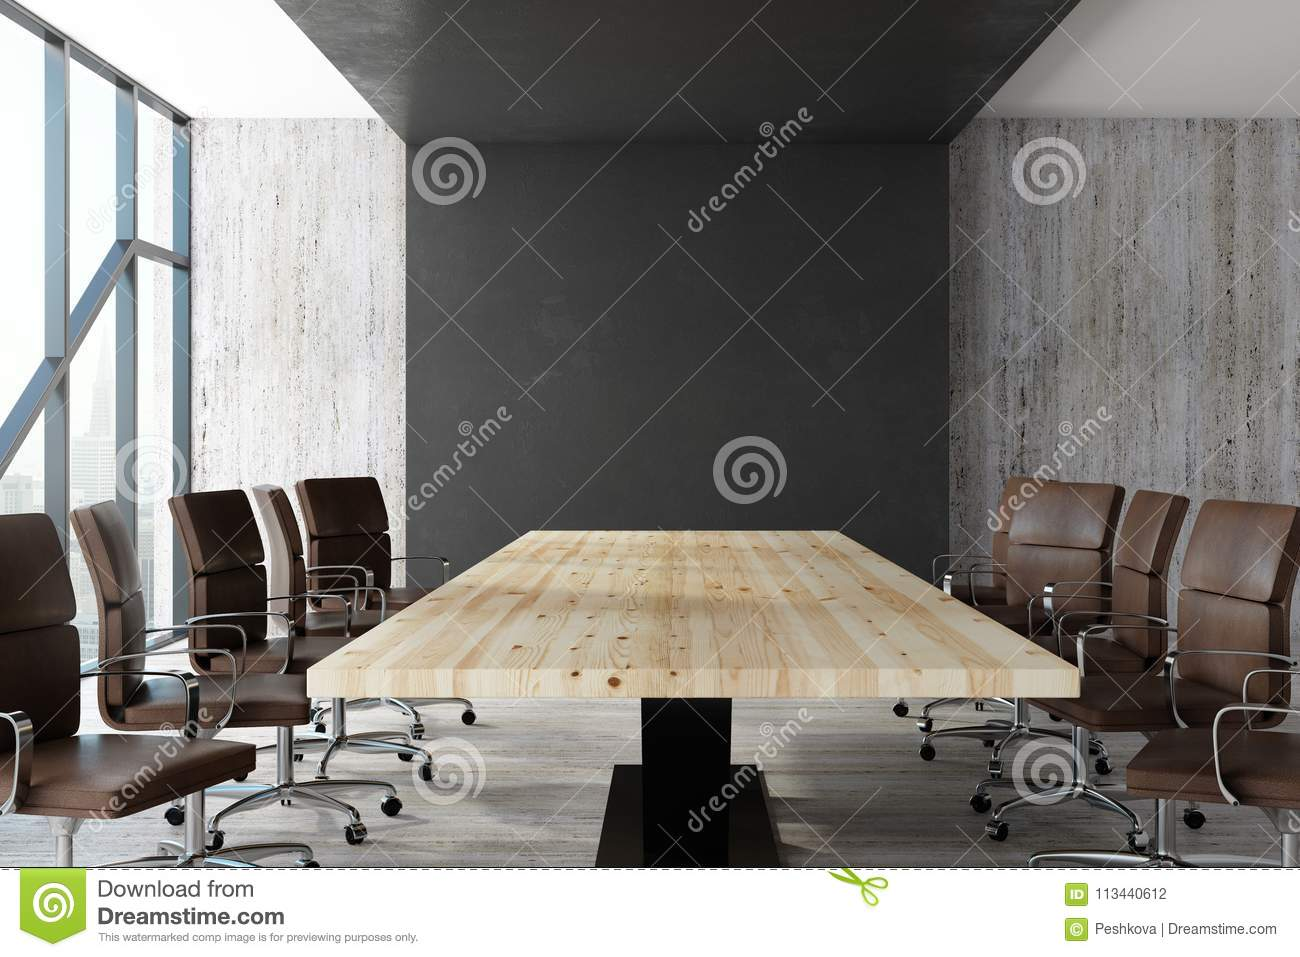 Download Modern Conference Room Stock Photo. Image Of Glass, Management    113440612